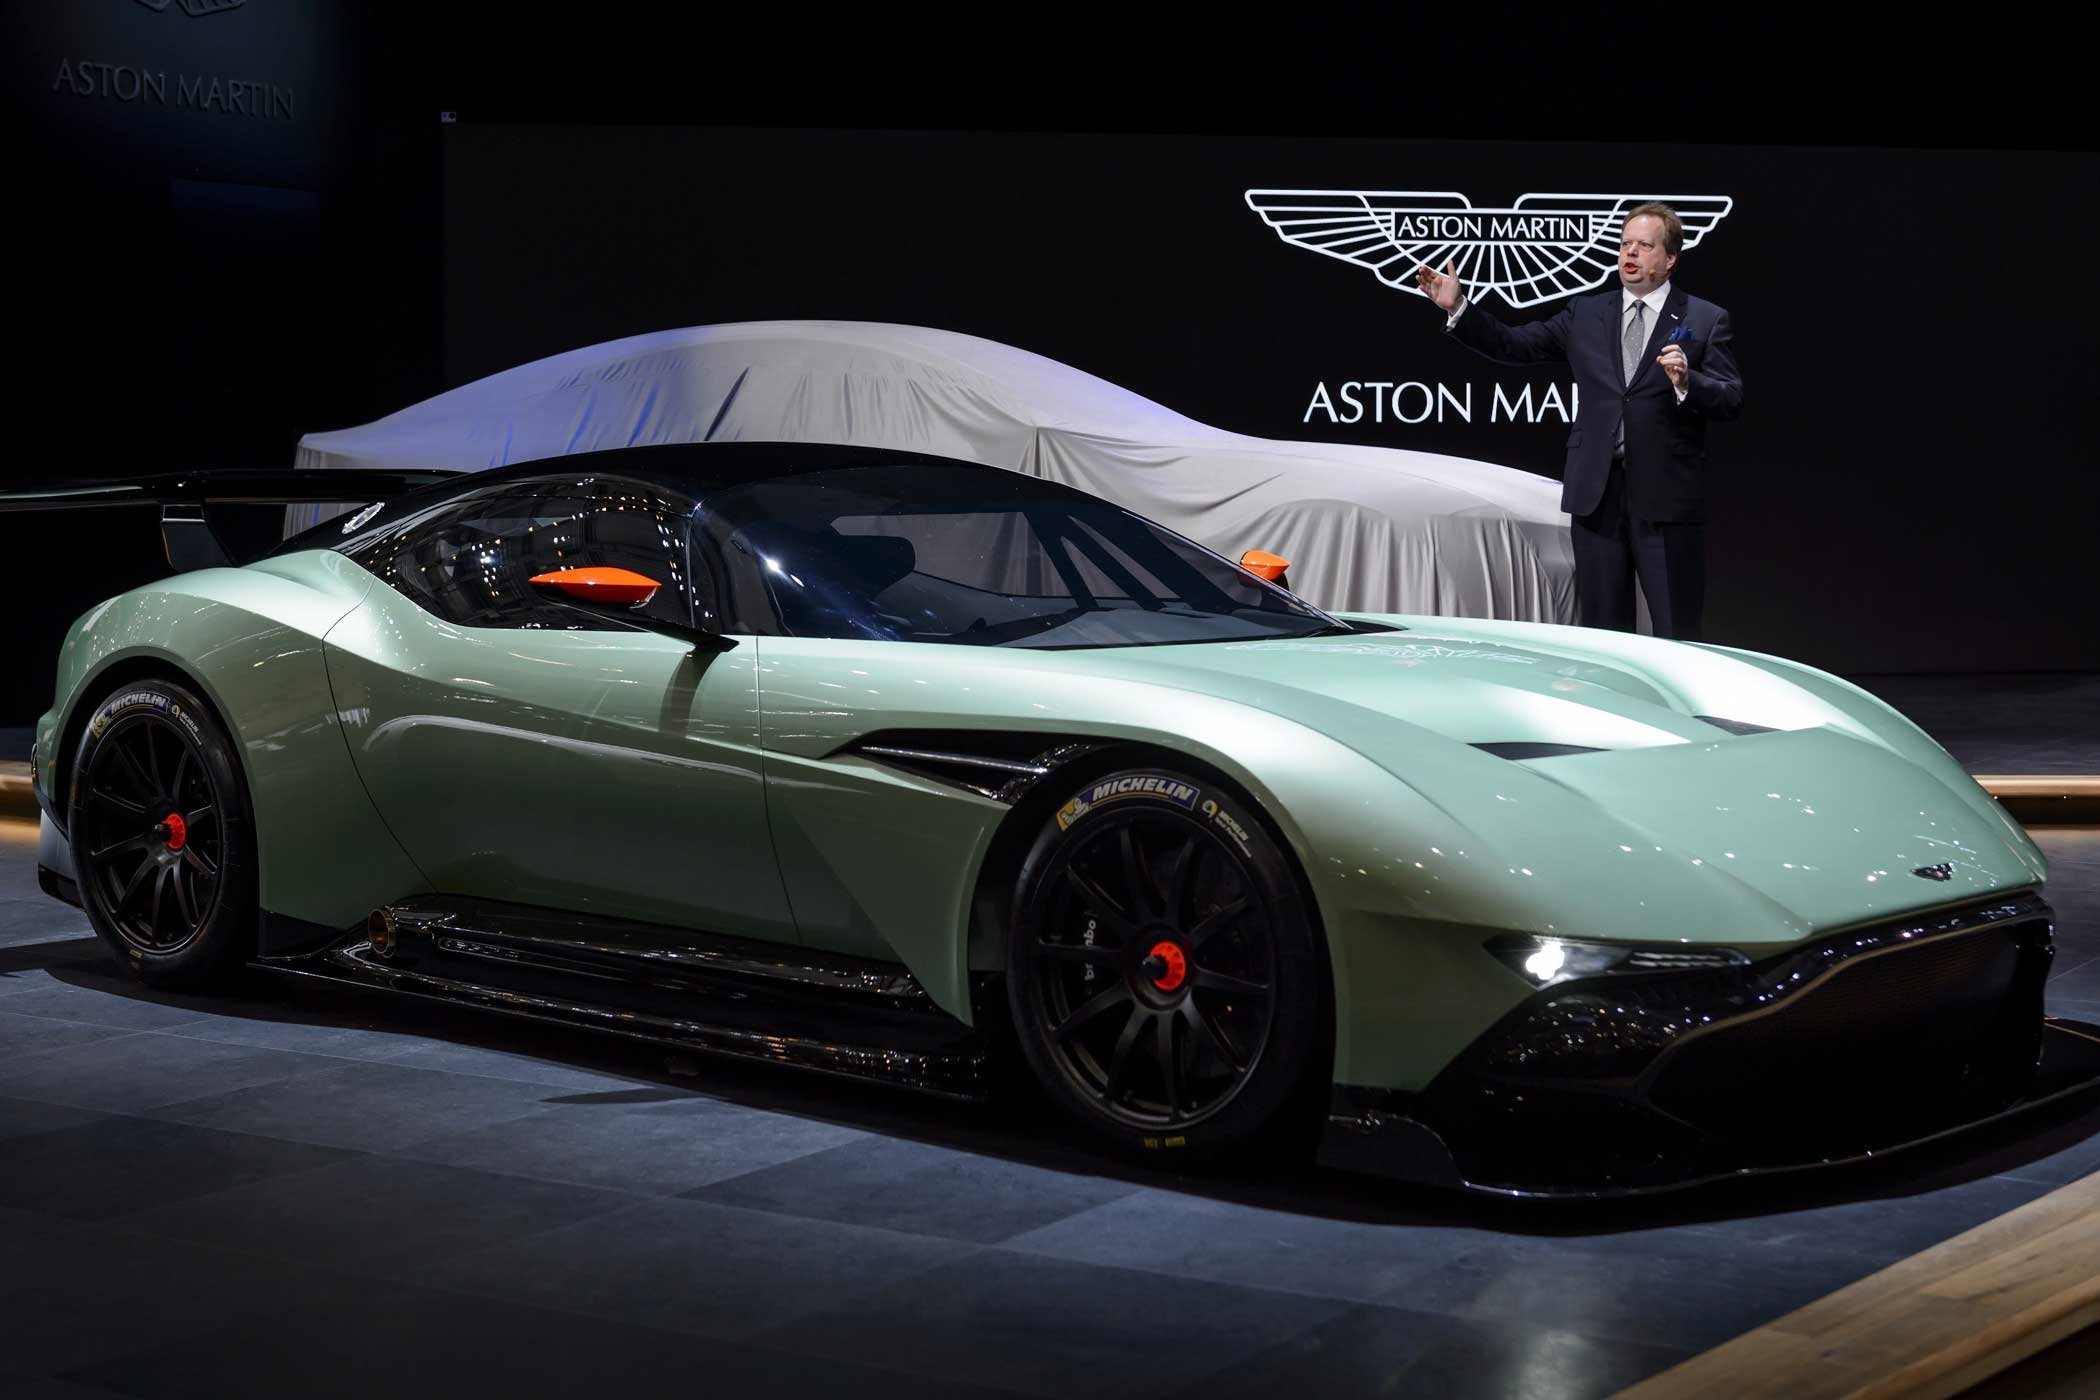 Aston Martin Vulcan. An Aston unlike any other before it. Only  24 of these will be  made. The car has a V12 engine that pumps out over 800 horsepower.